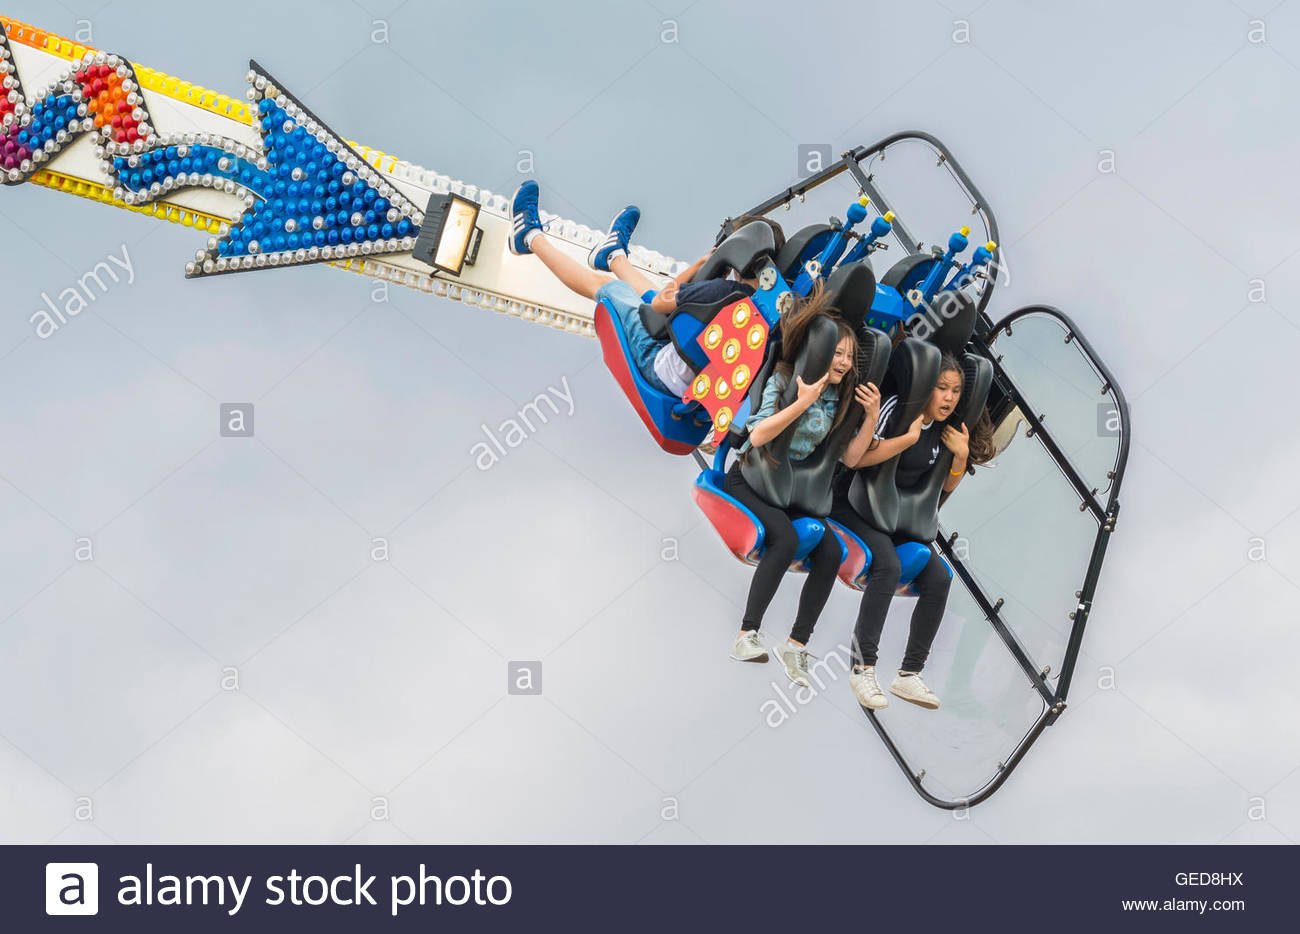 Young people riding the Oxygen funfair ride. - Stock Image